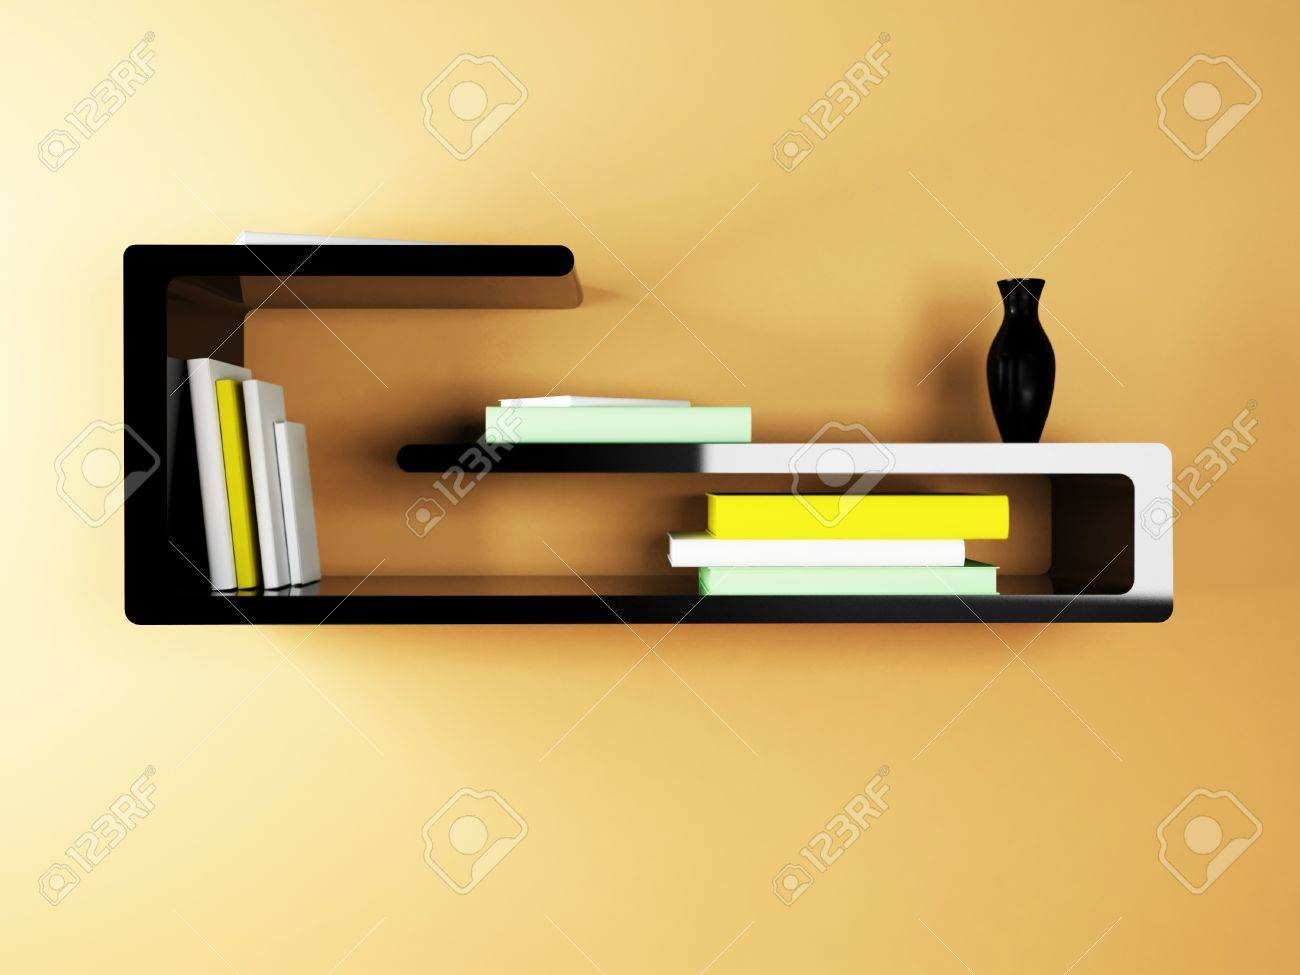 Creative Shelf Creative Shelf On The Wall With The Books Stock Photo Picture And